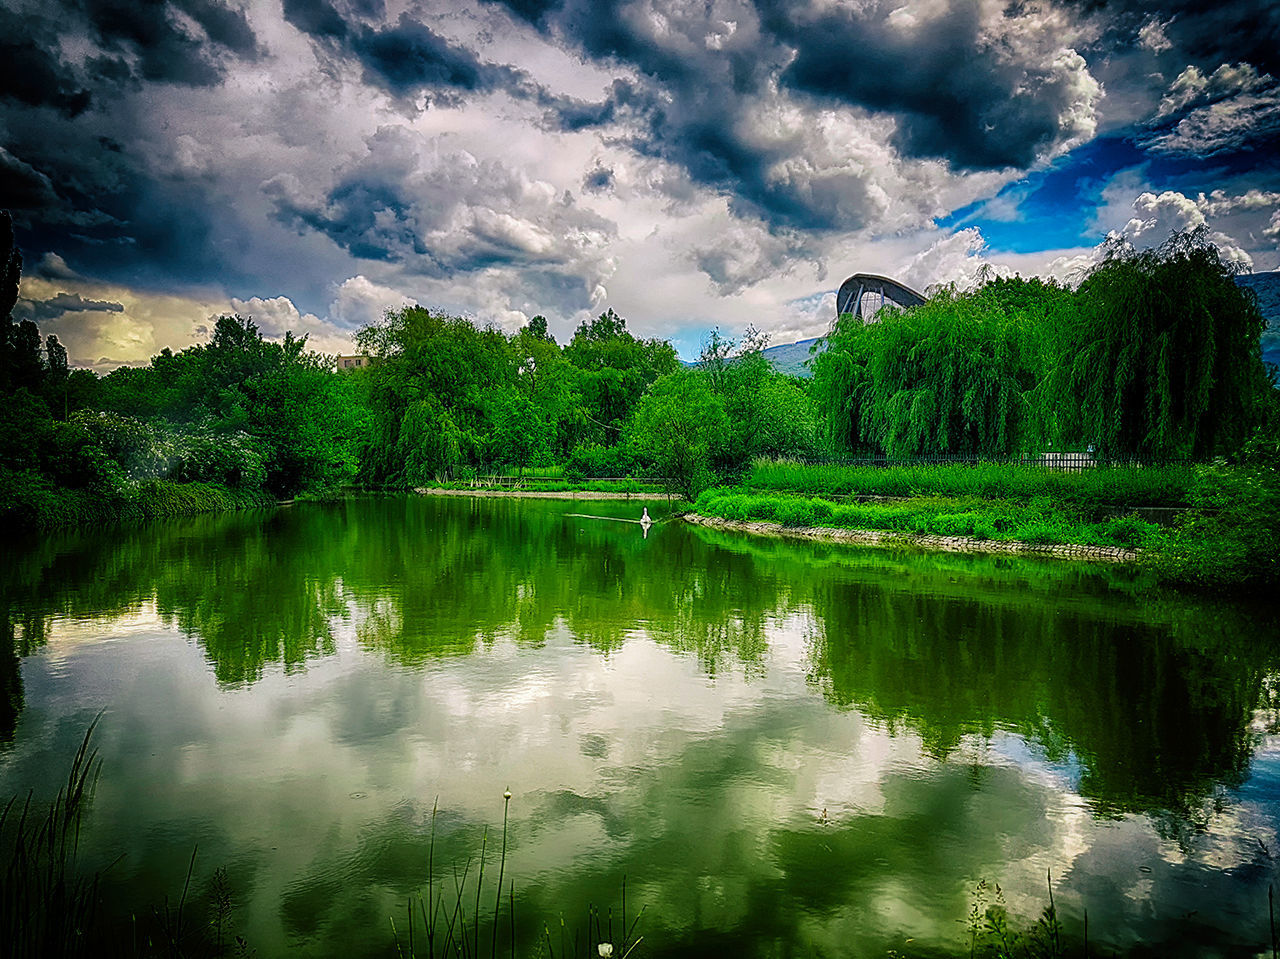 reflection, water, cloud - sky, tree, lake, sky, nature, waterfront, beauty in nature, tranquil scene, no people, green color, tranquility, outdoors, scenics, day